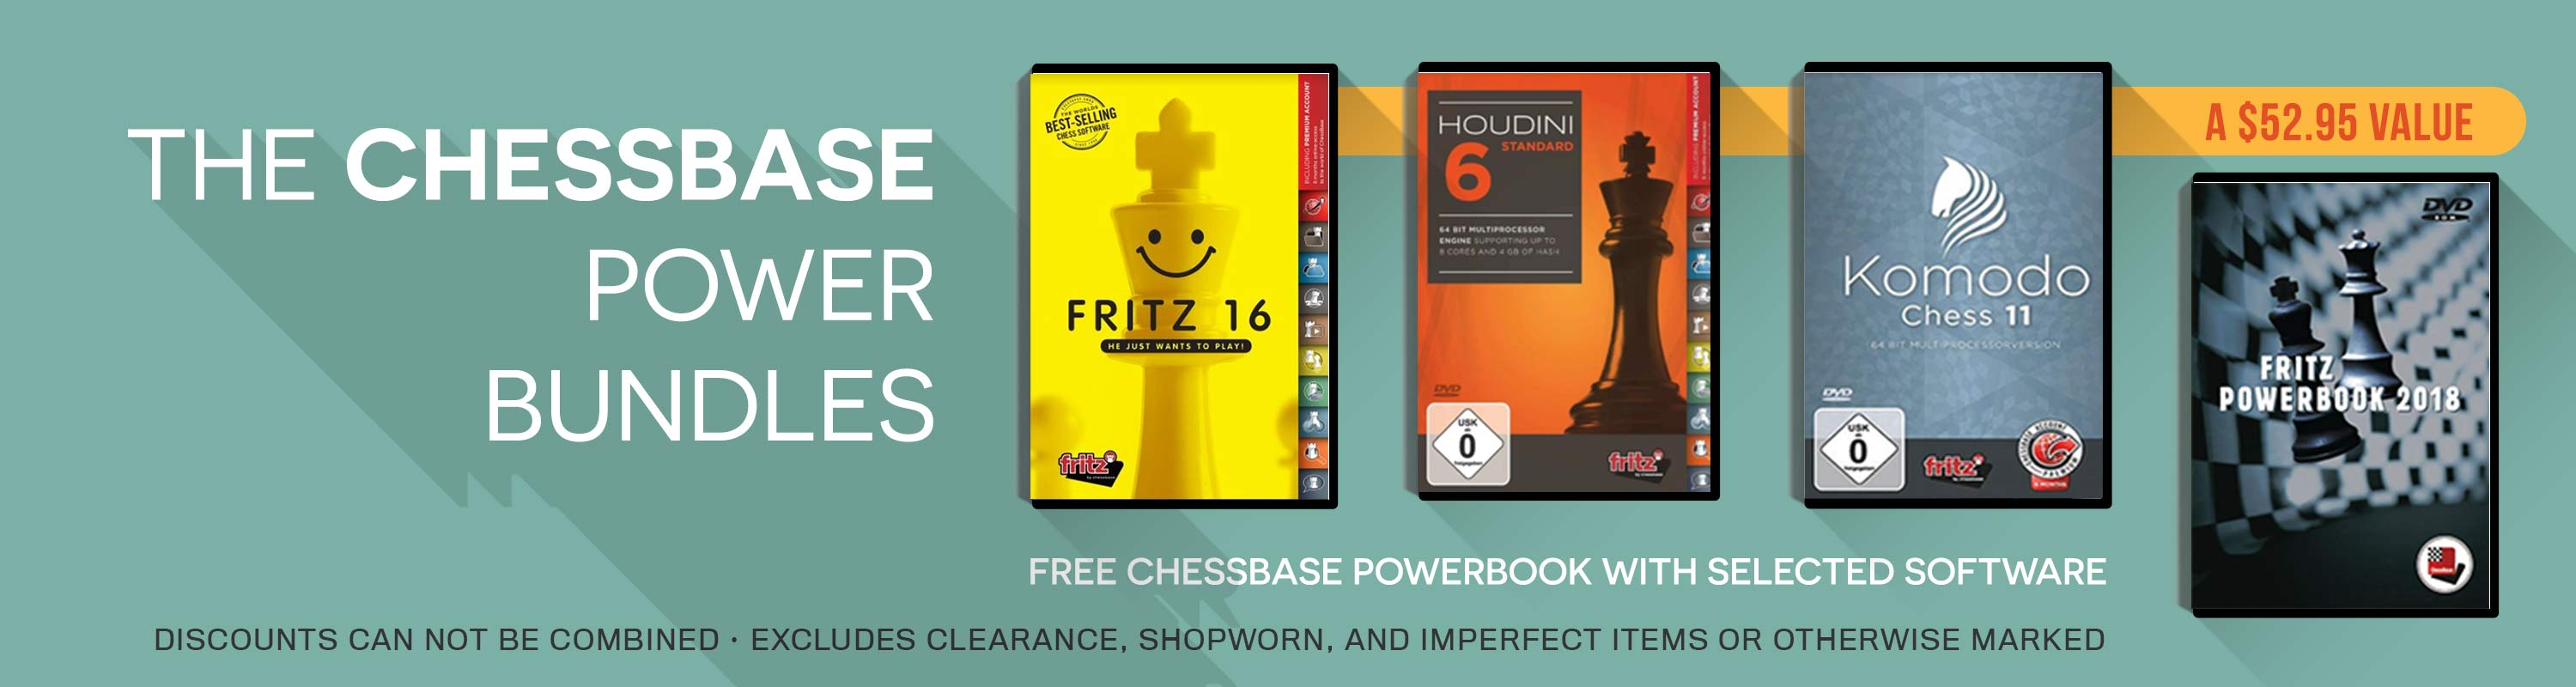 The ChessBase Power Bundles!